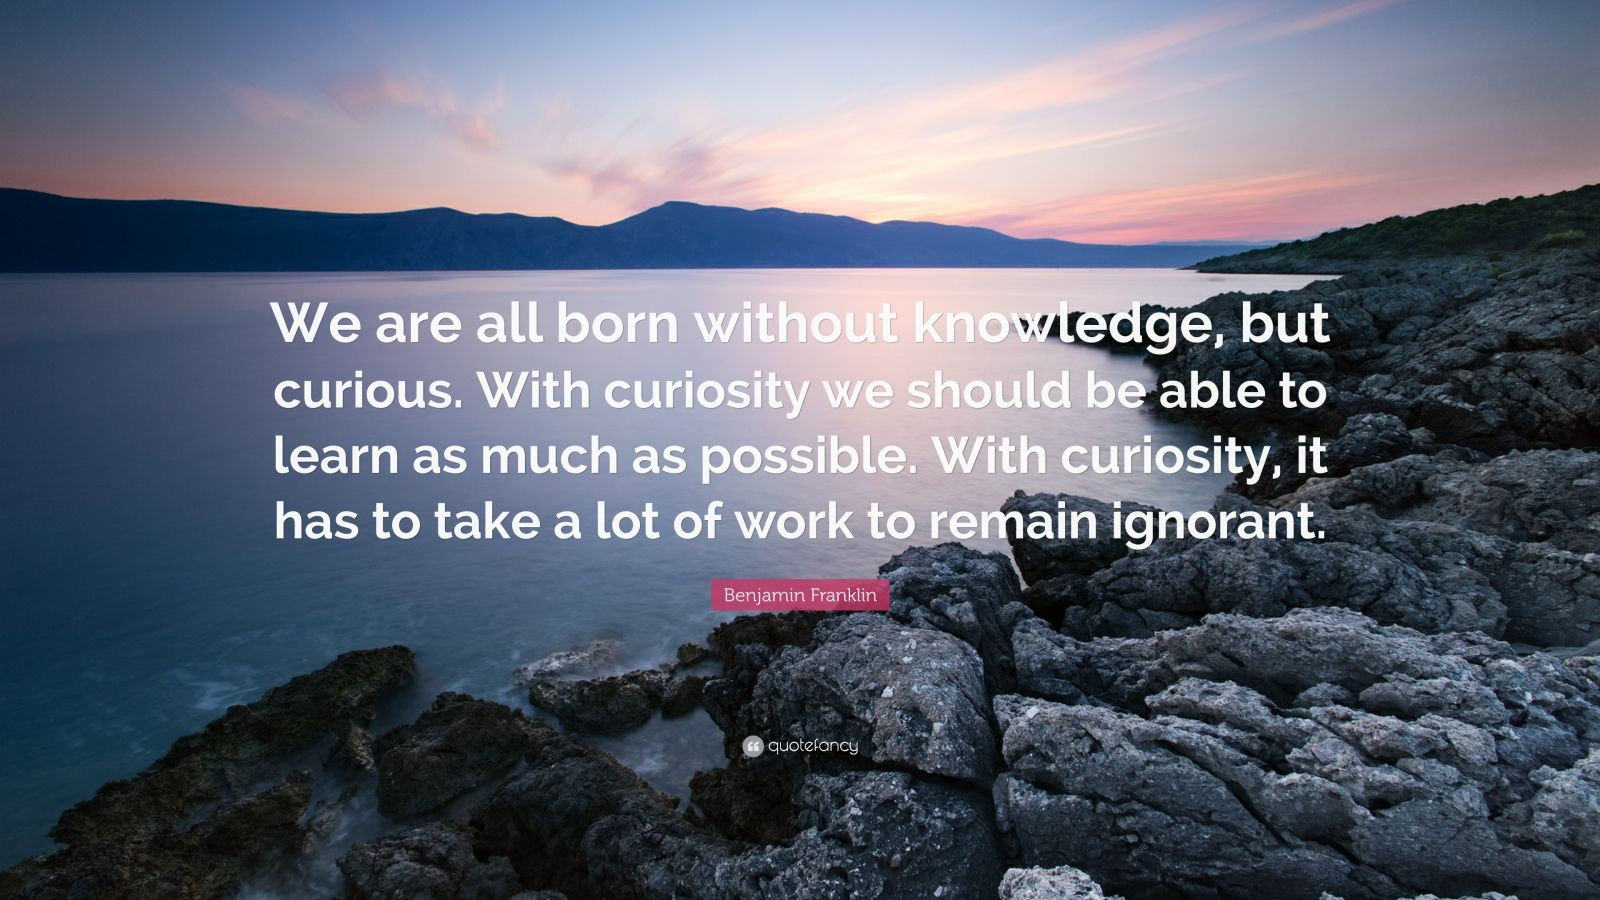 """Benjamin Franklin Quote: """"We are all born without knowledge, but curious. With curiosity we should be able to learn as much as possible. With curiosity, it has to take a lot of work to remain ignorant."""""""